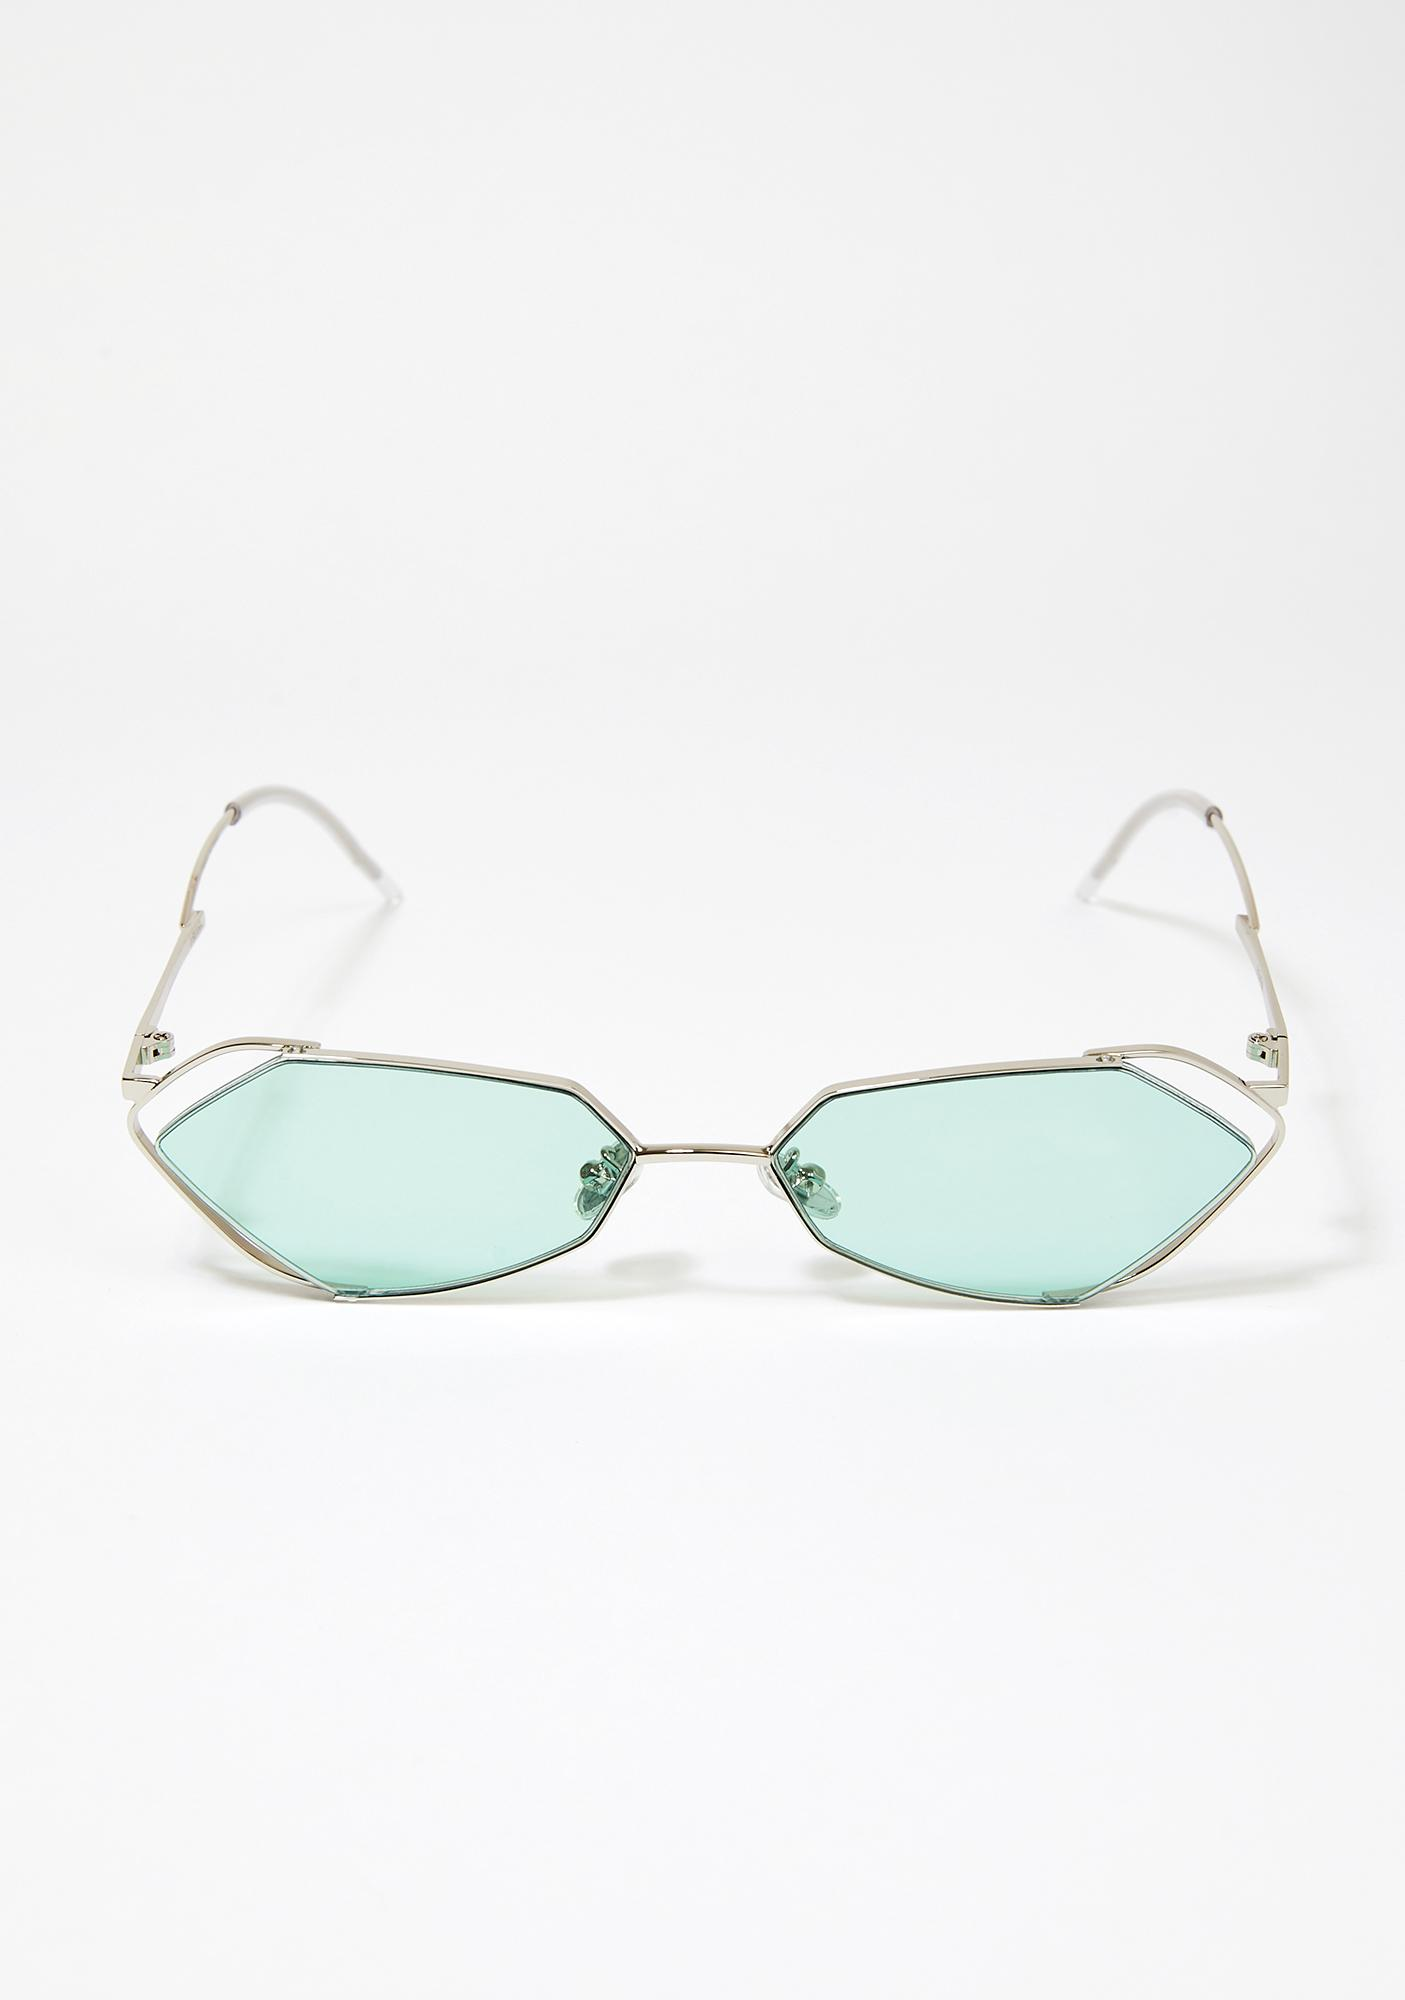 I-SEA Fever Silver With Mint Lens Sunglasses